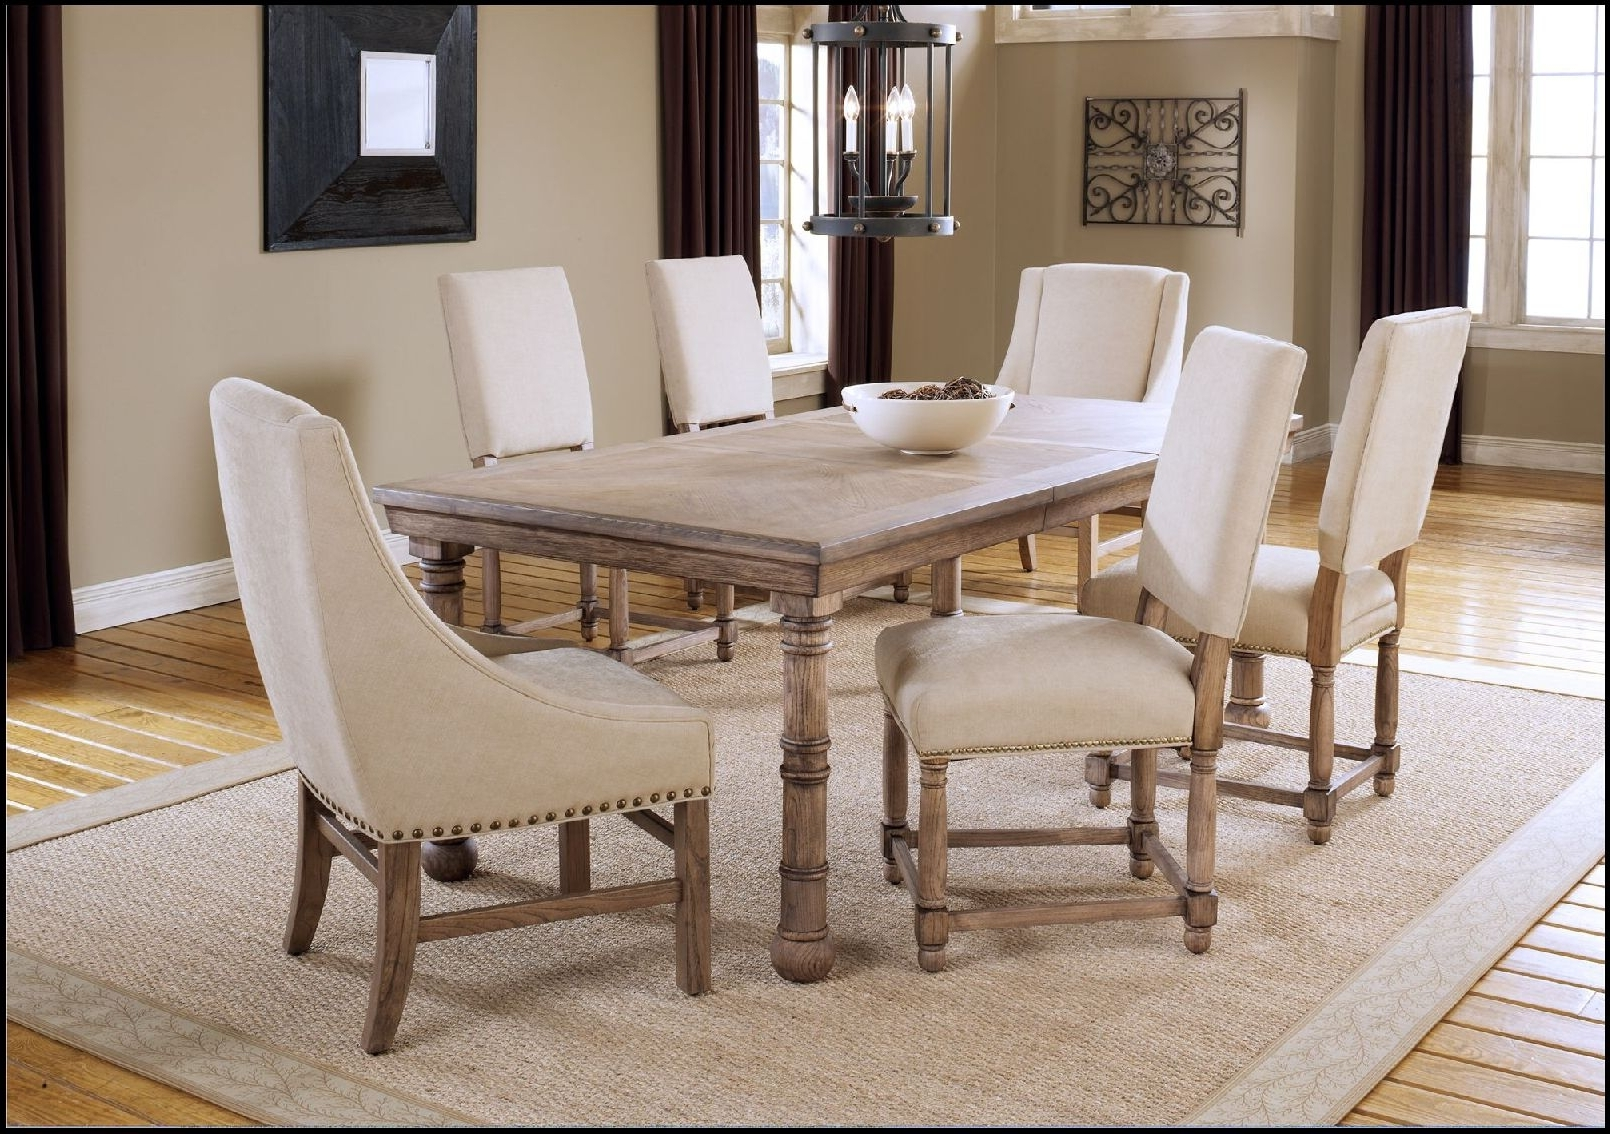 2017 Wonderfull Dining Table Light Wood How To Refinish A Room With intended for Cream And Wood Dining Tables